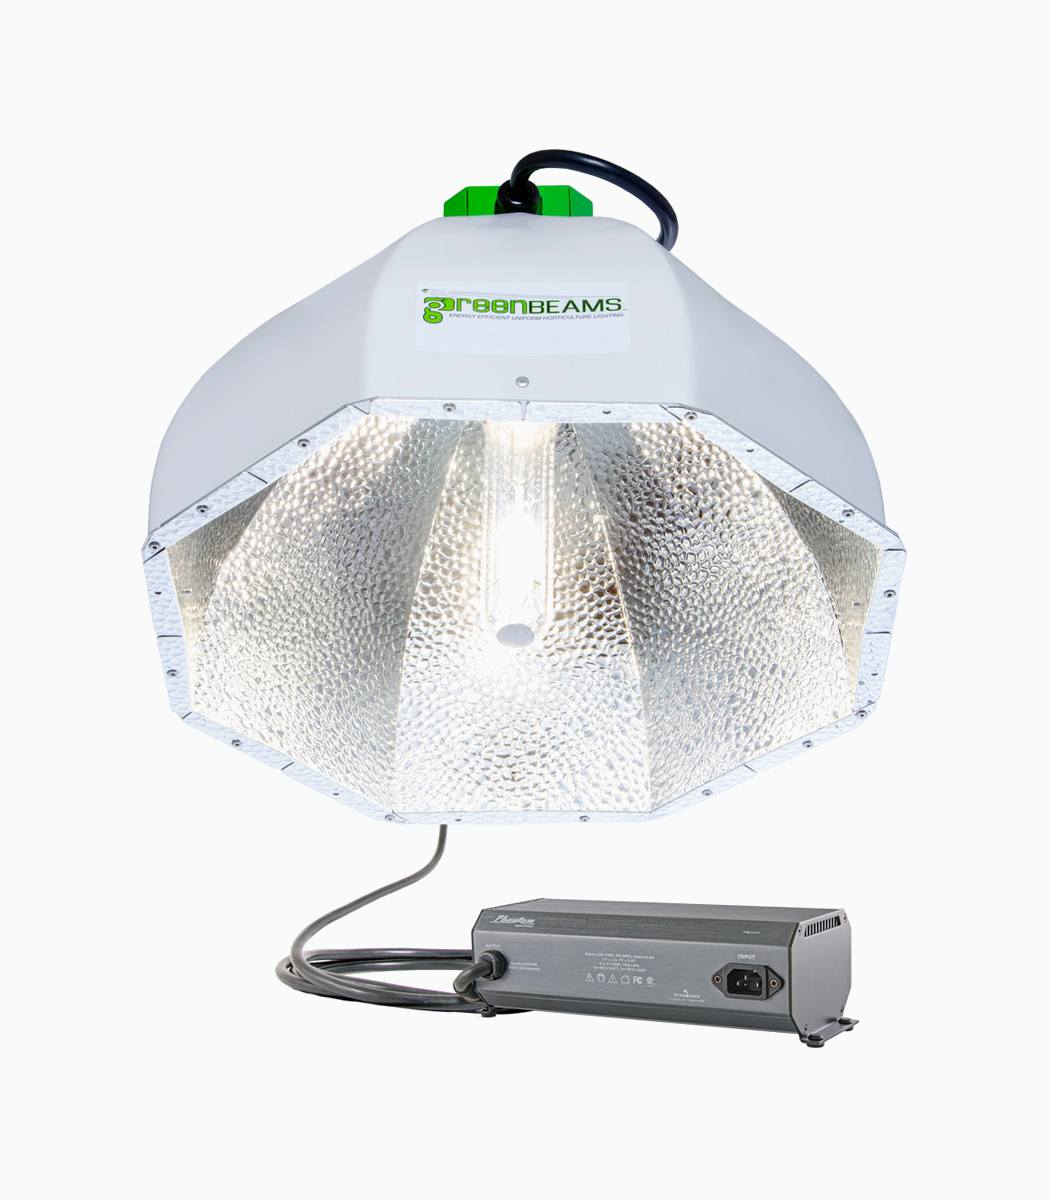 Greenbeams CMH Reflector With Phantom CMH Ballast And 3100K Lamp